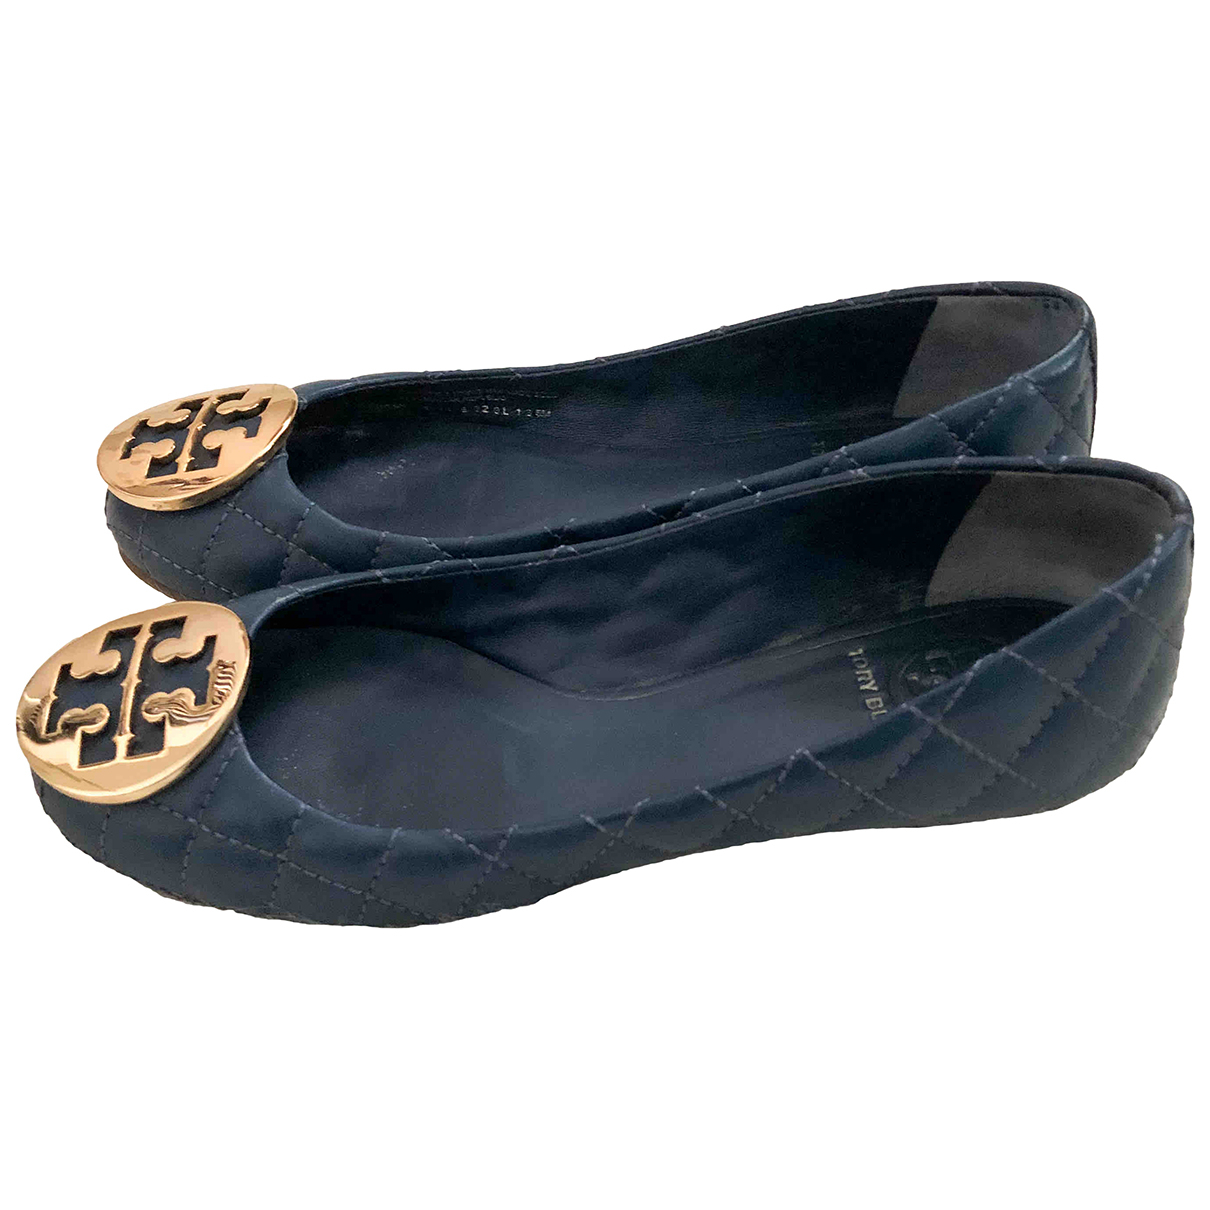 Tory Burch \N Blue Leather Ballet flats for Women 5 UK